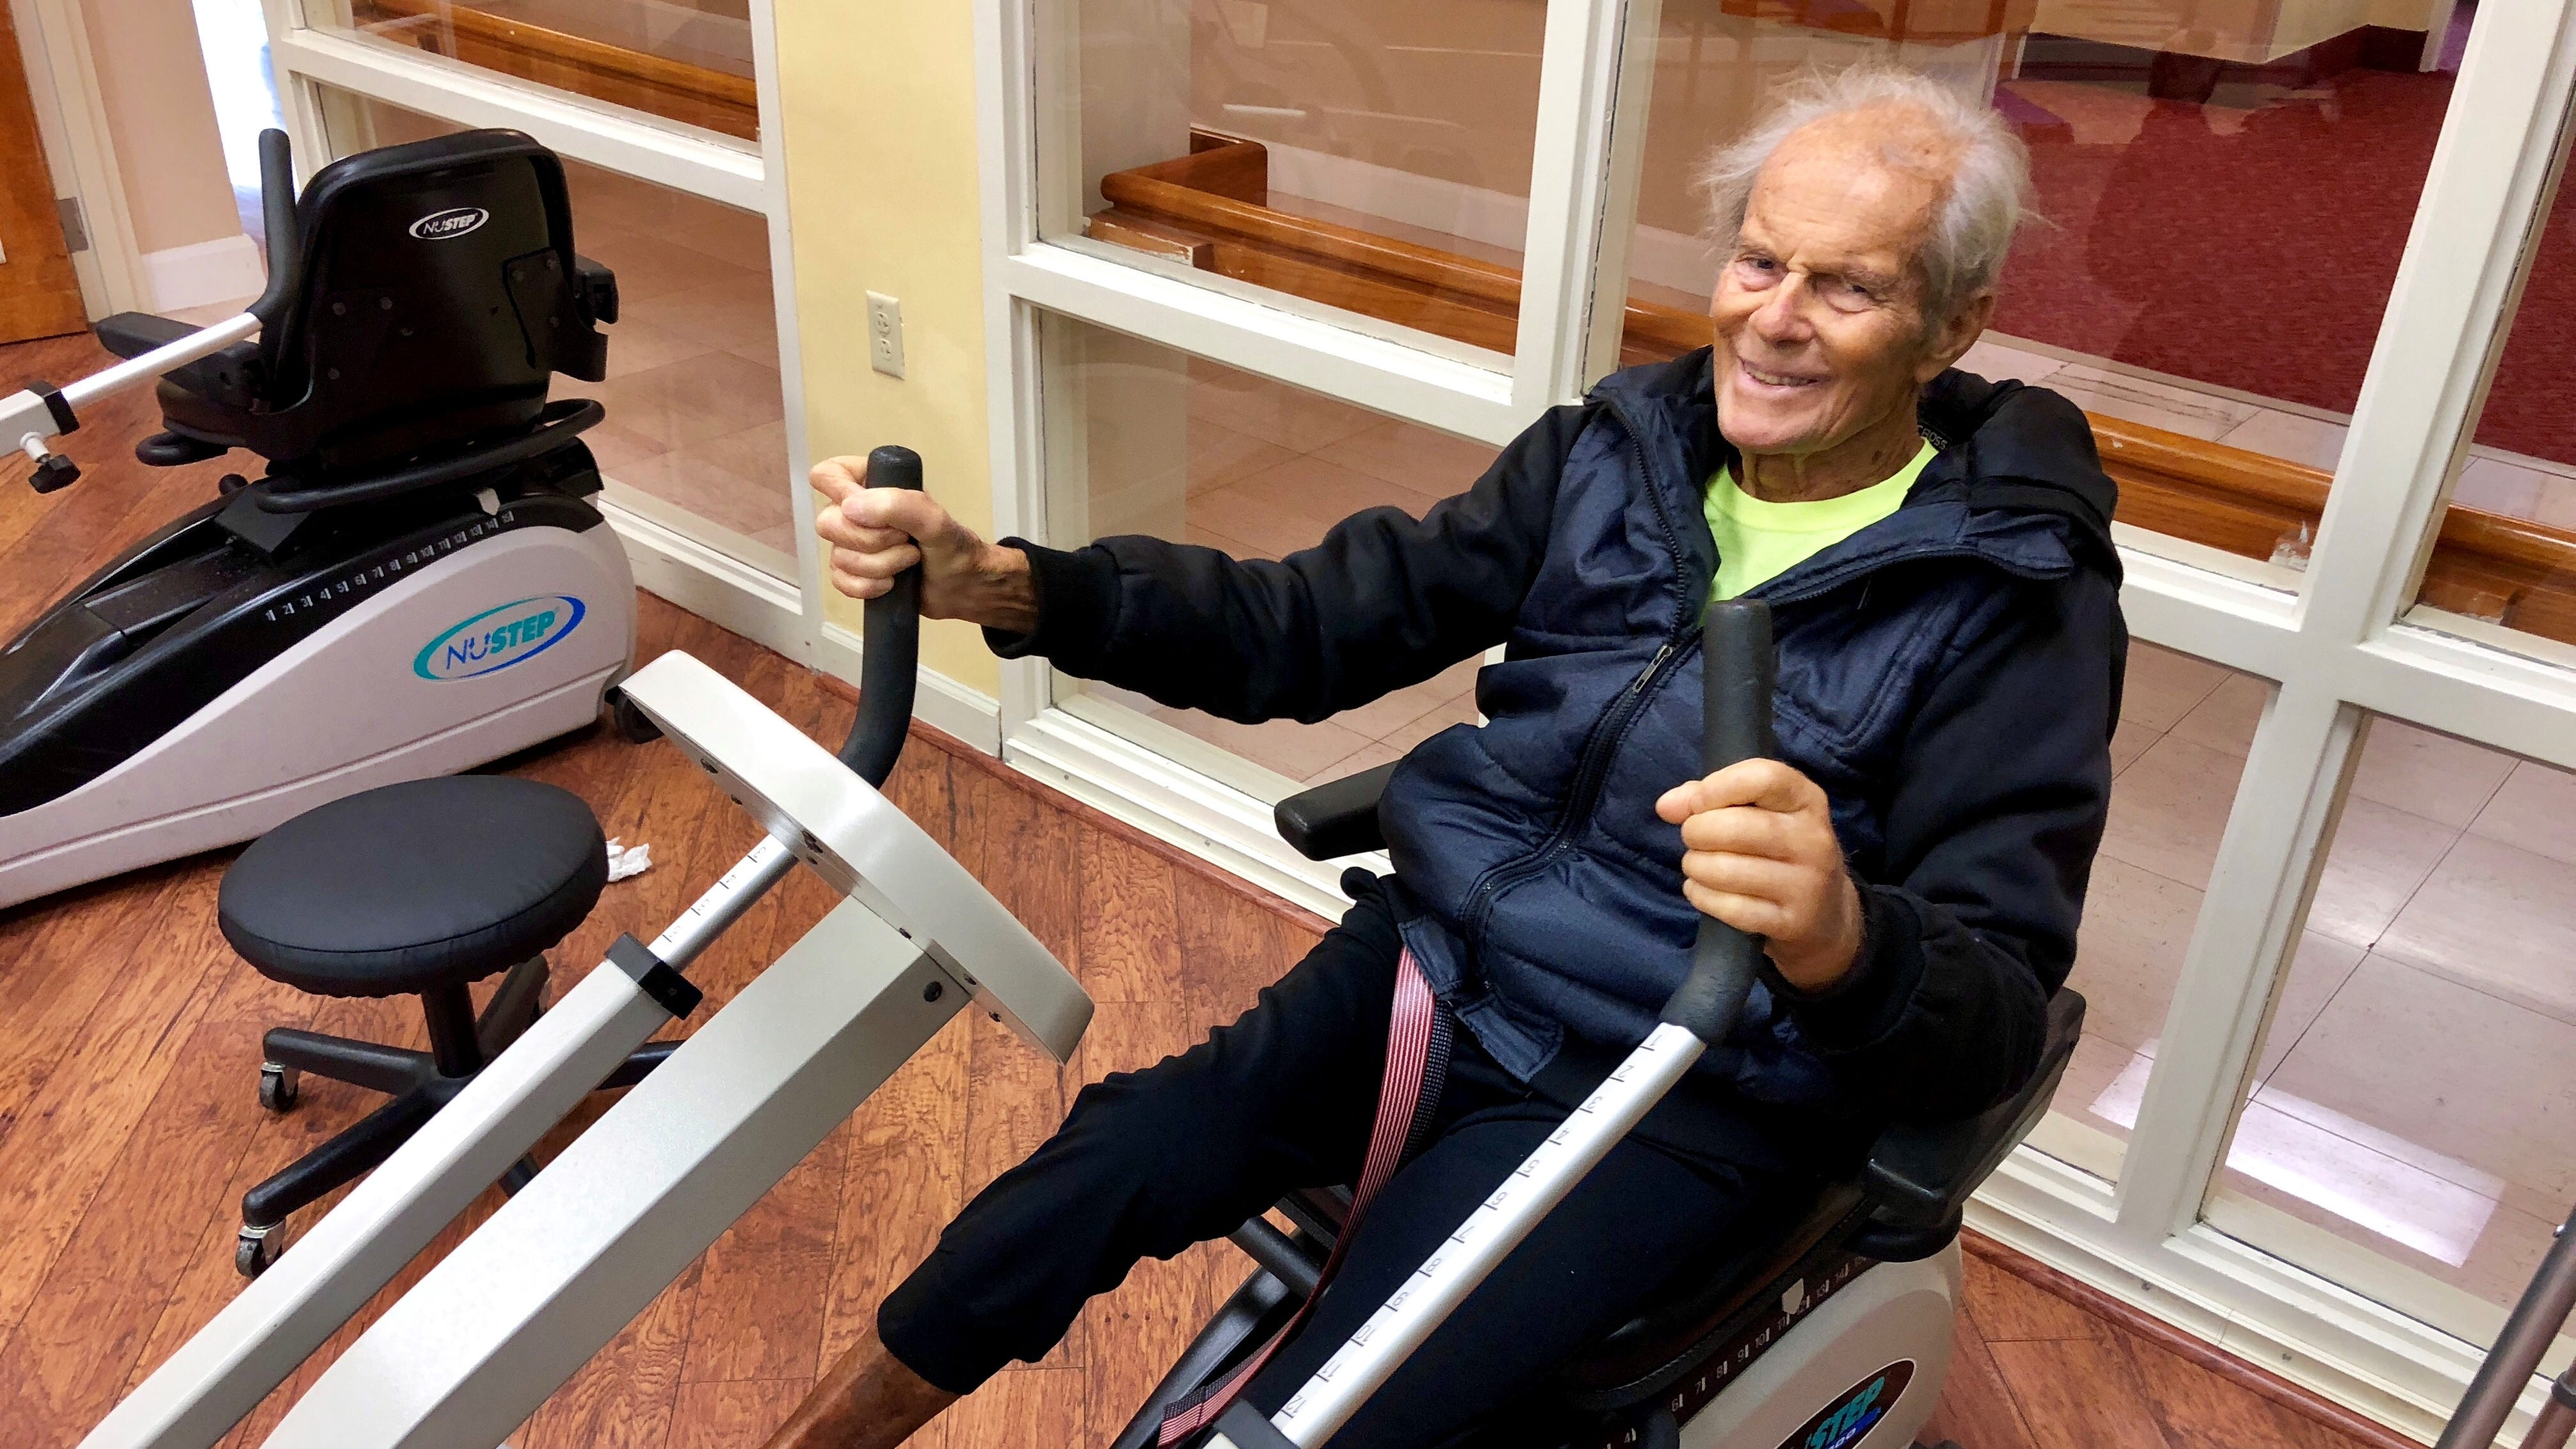 Roy Haase, who is 93 years old, is recovering aftercontractingVibrio vulnificuswhileswimmingatDelnor-Wiggins Pass State Park.